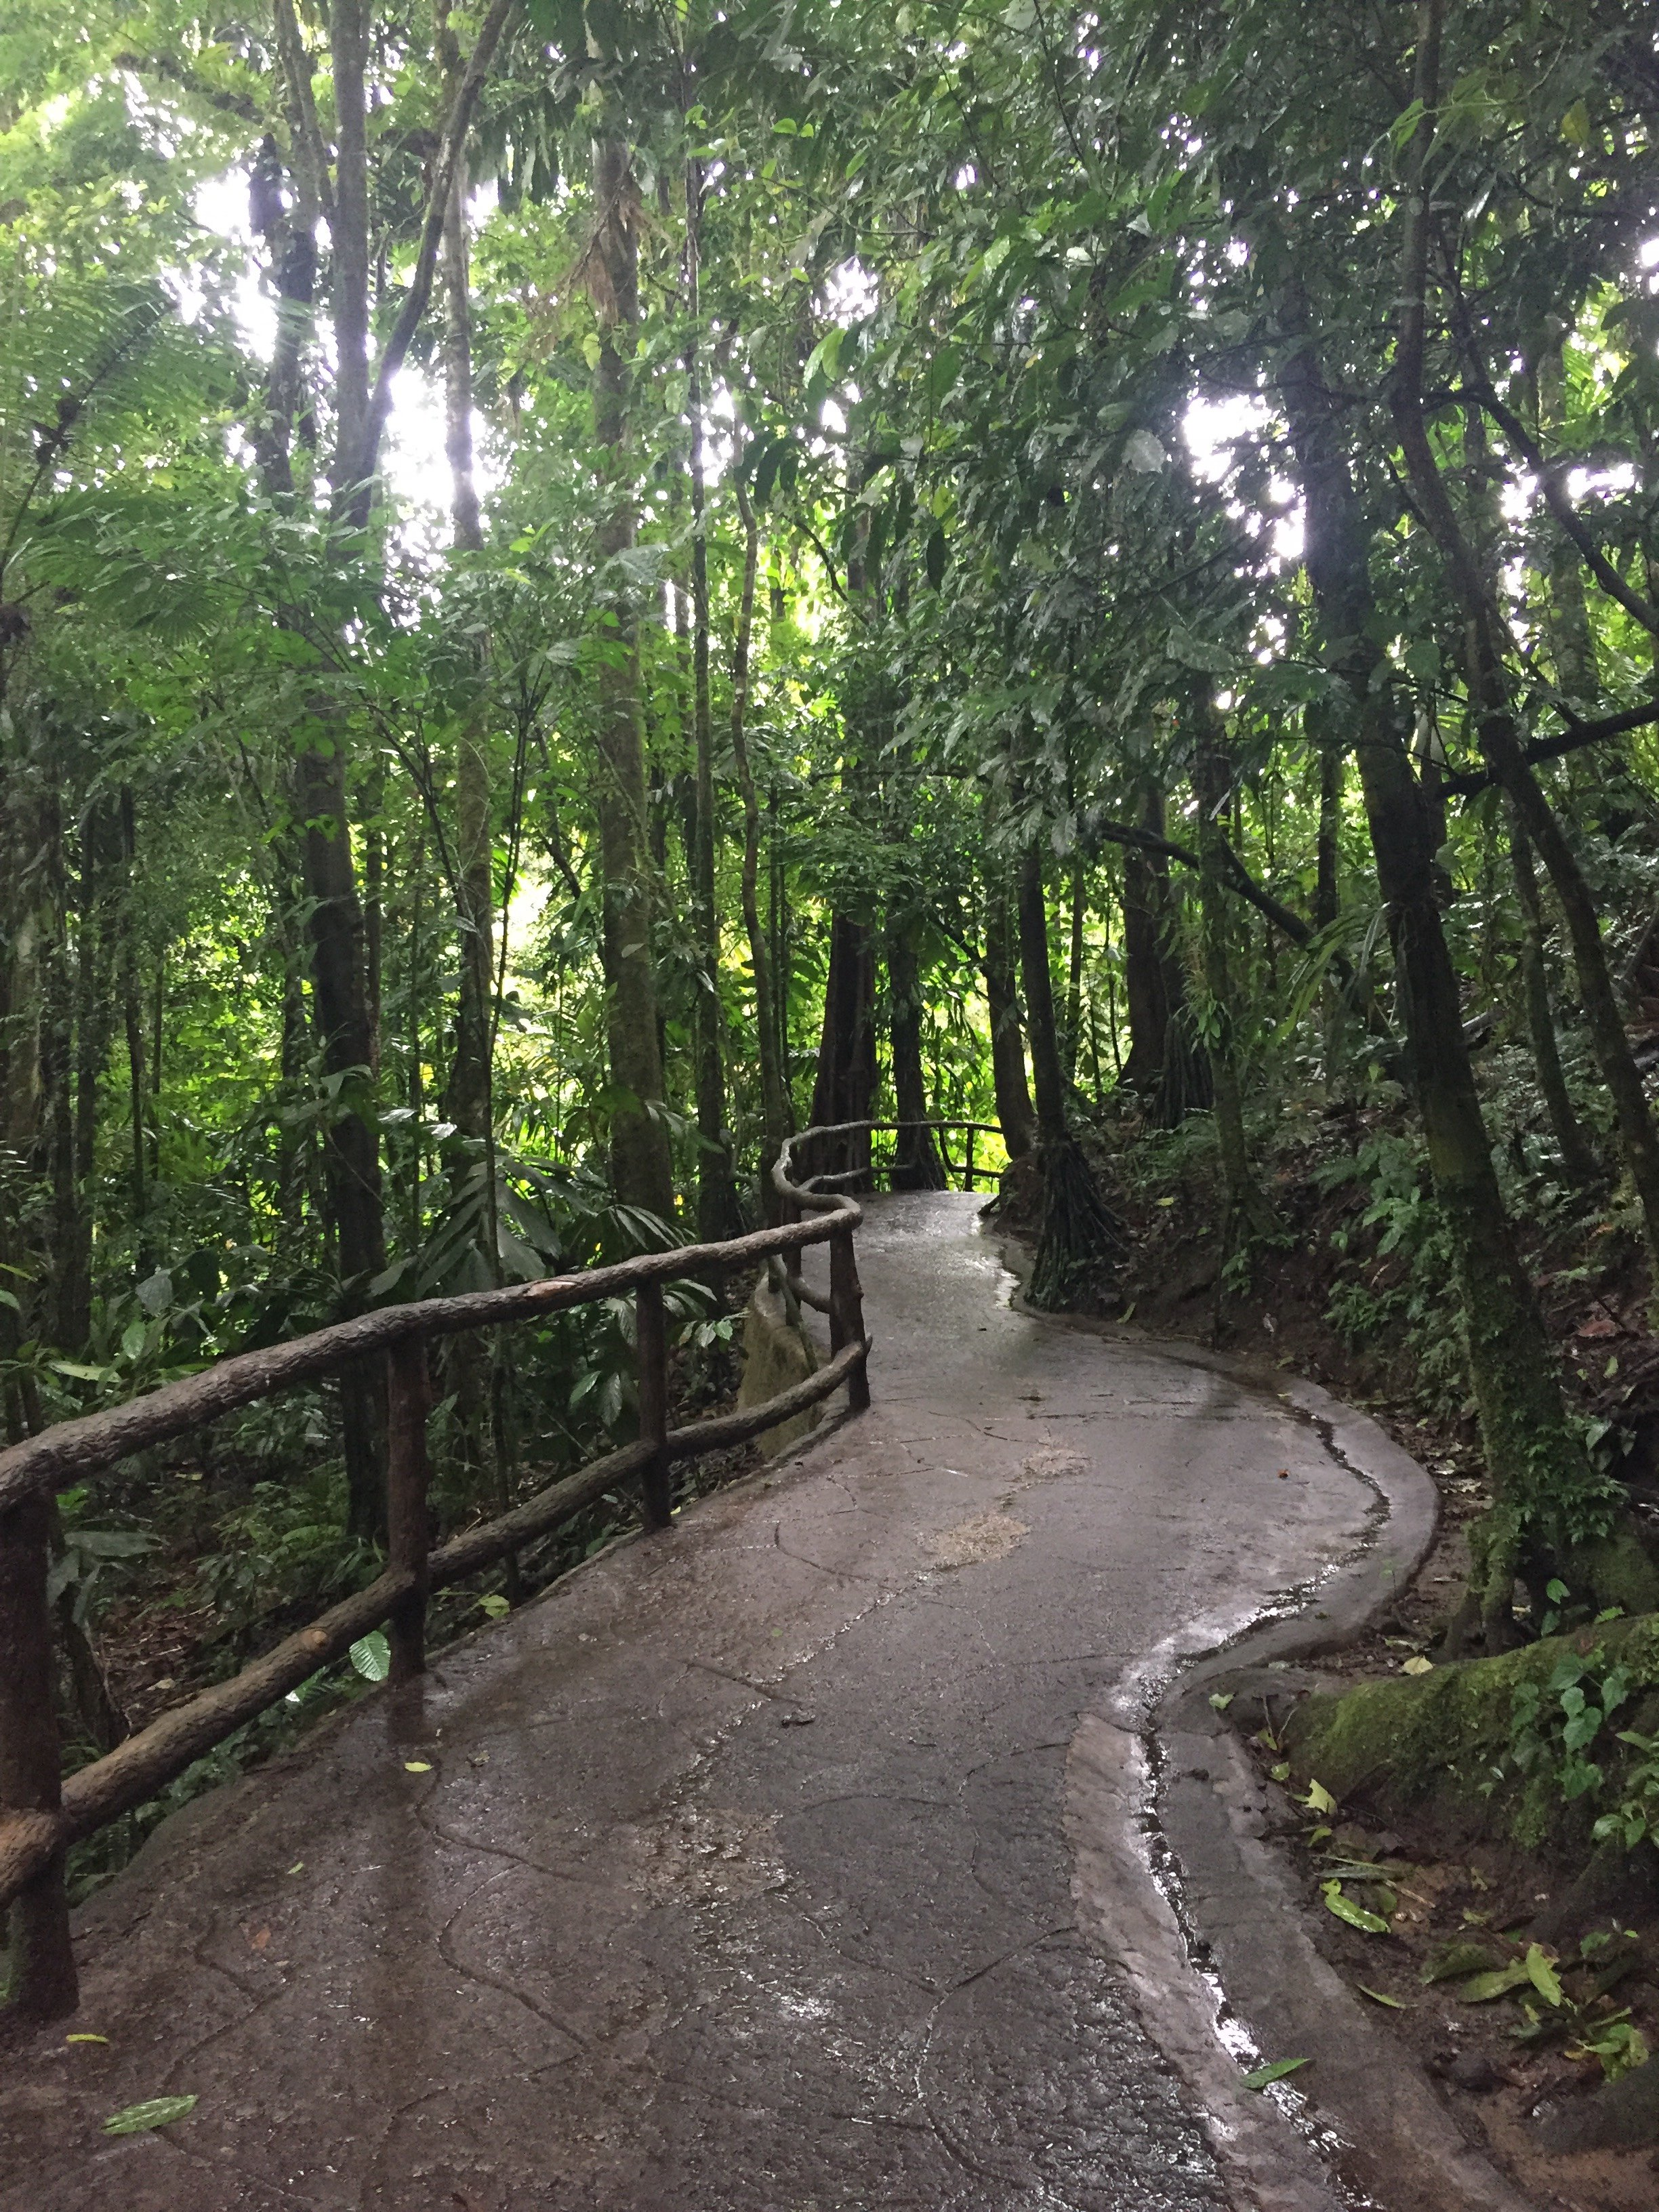 Winding Paths at Mistico Arenal Hanging Bridges Park